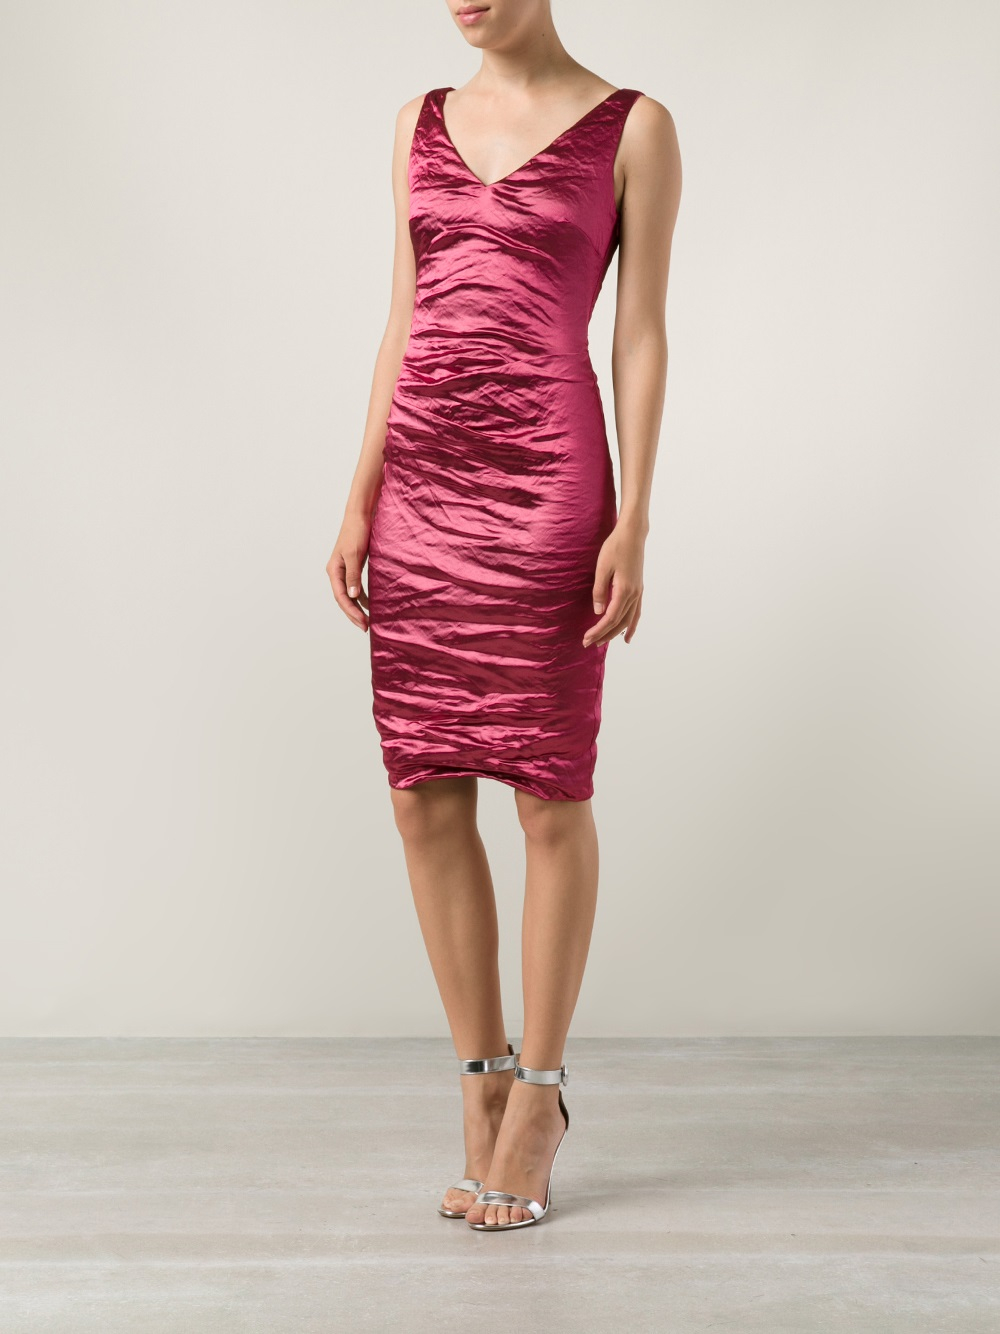 Lyst  Nicole miller Ruched Cocktail Dress in Pink